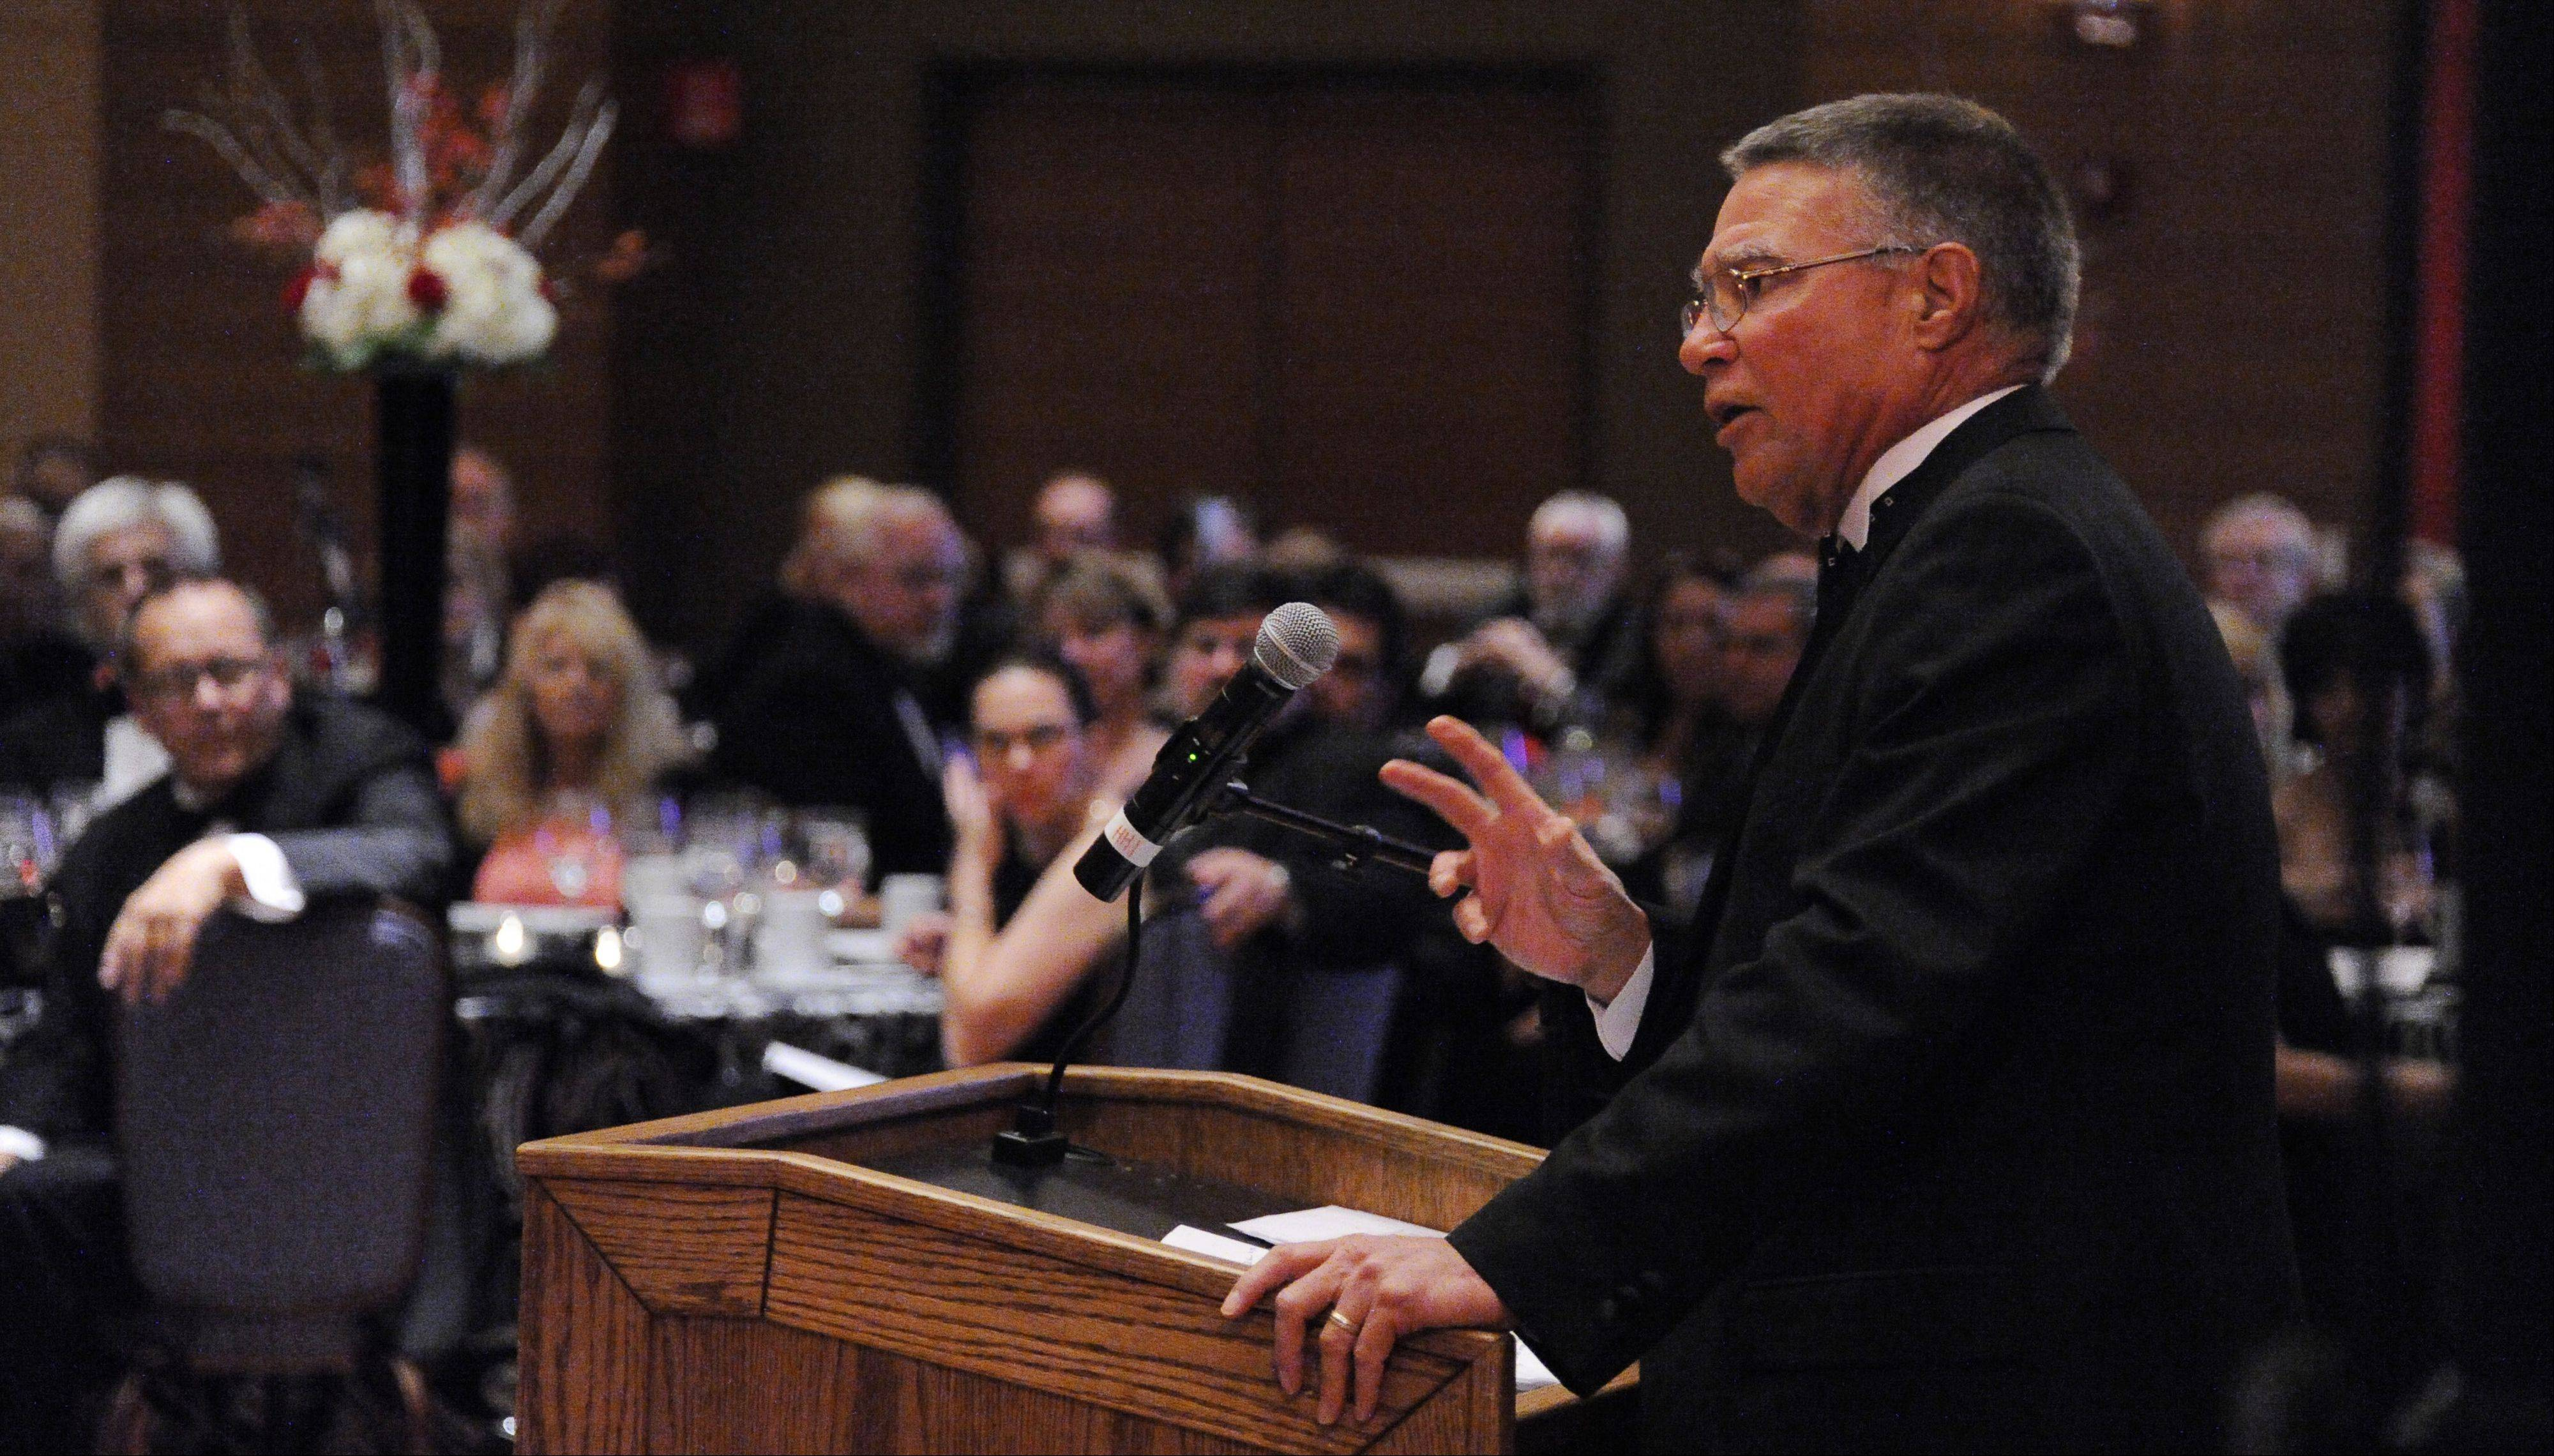 Harper President Kenneth Ender speaks to the more than 400 people at the President's Ball gala fundraiser for the Harper College Educational Foundation on Sept. 22.